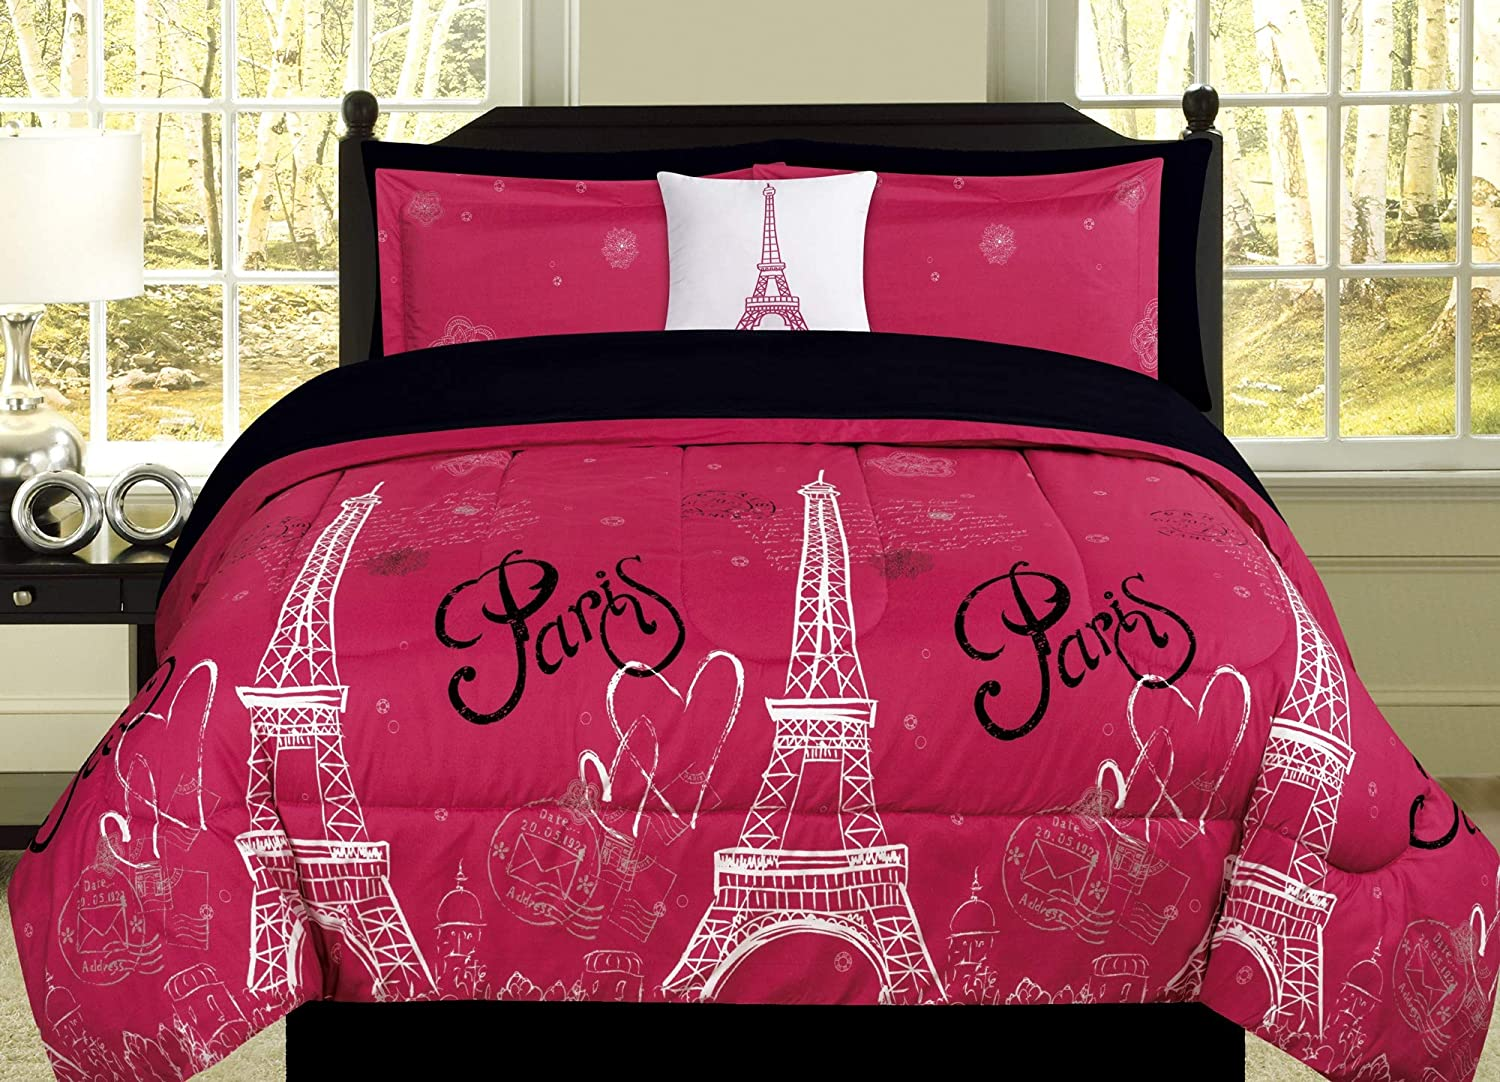 HowPlumb Twin Paris Comforter Pink Black White Eiffel Tower Bedding and Sheet 6 Piece Bed in a Bag Set